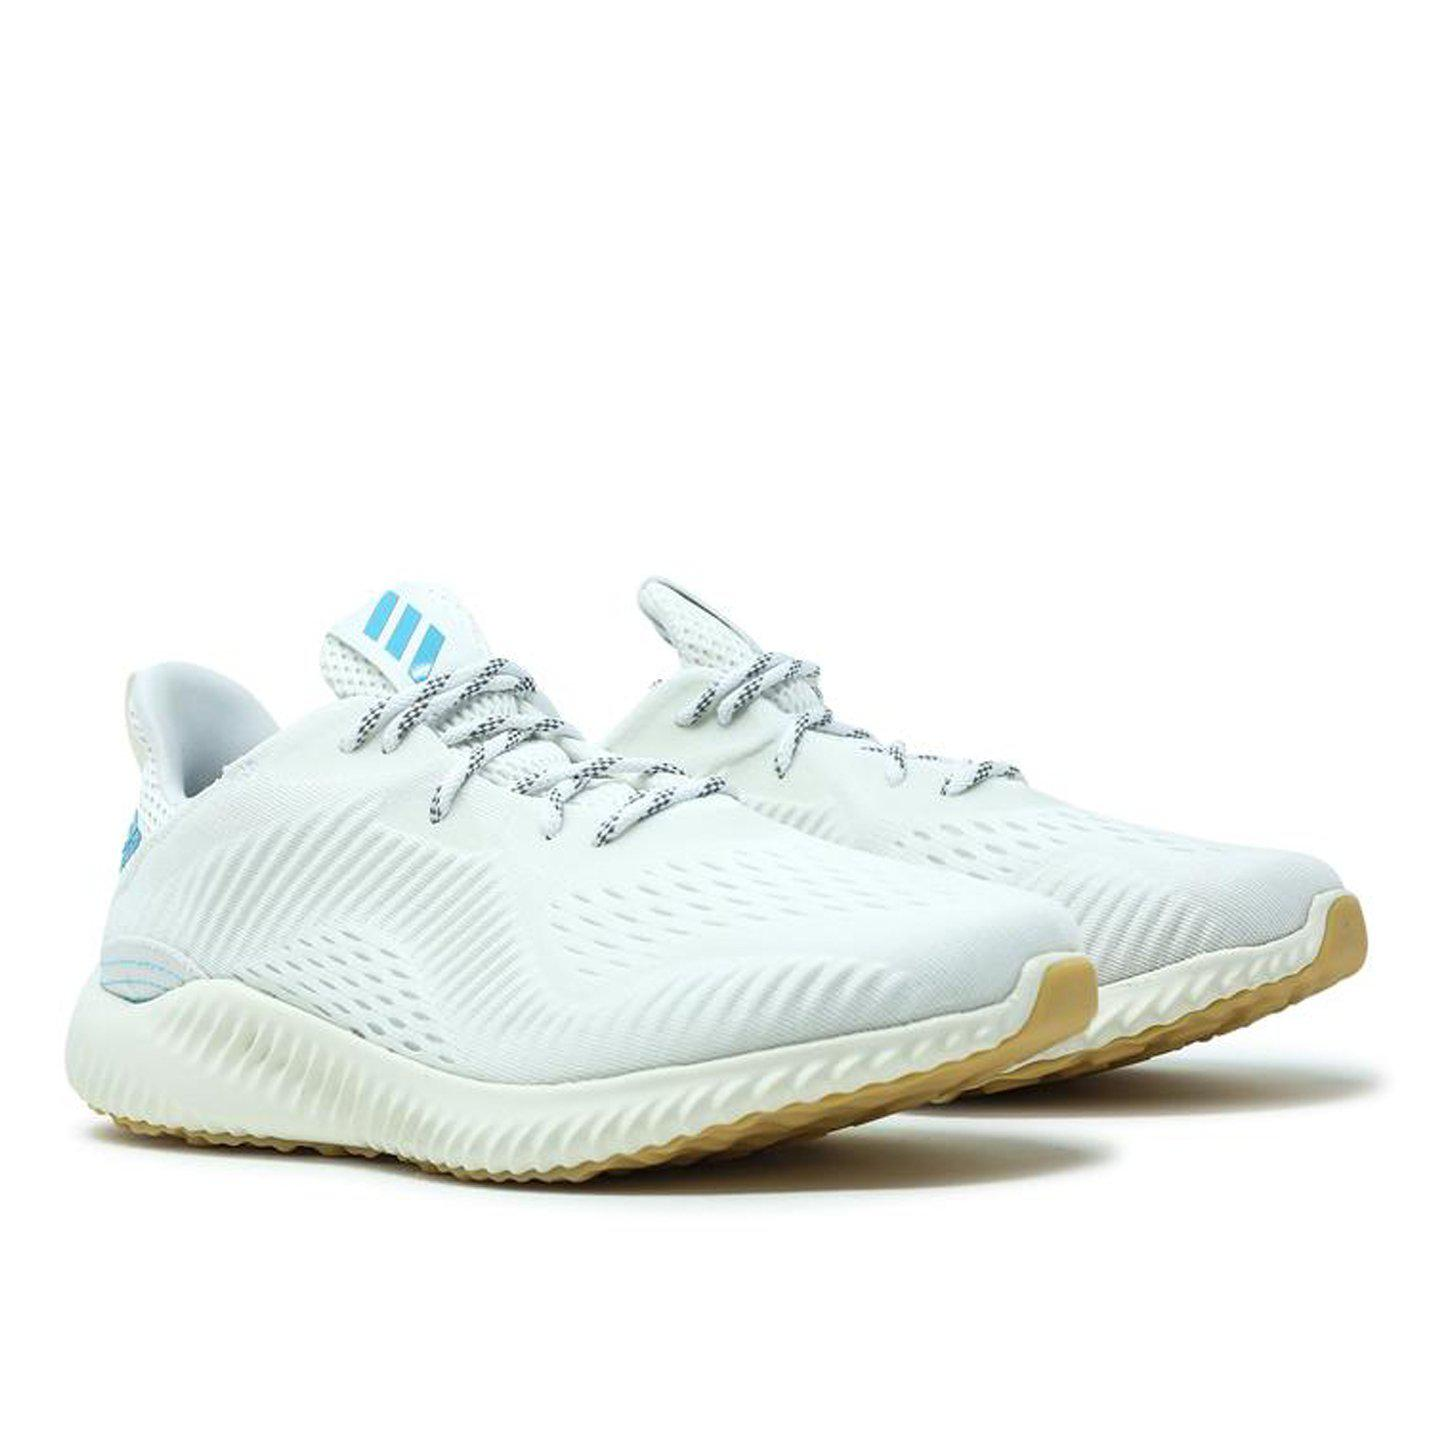 8cf8fe5cc25f6 Lyst - adidas Originals Alphabounce 1 Parley in Blue for Men